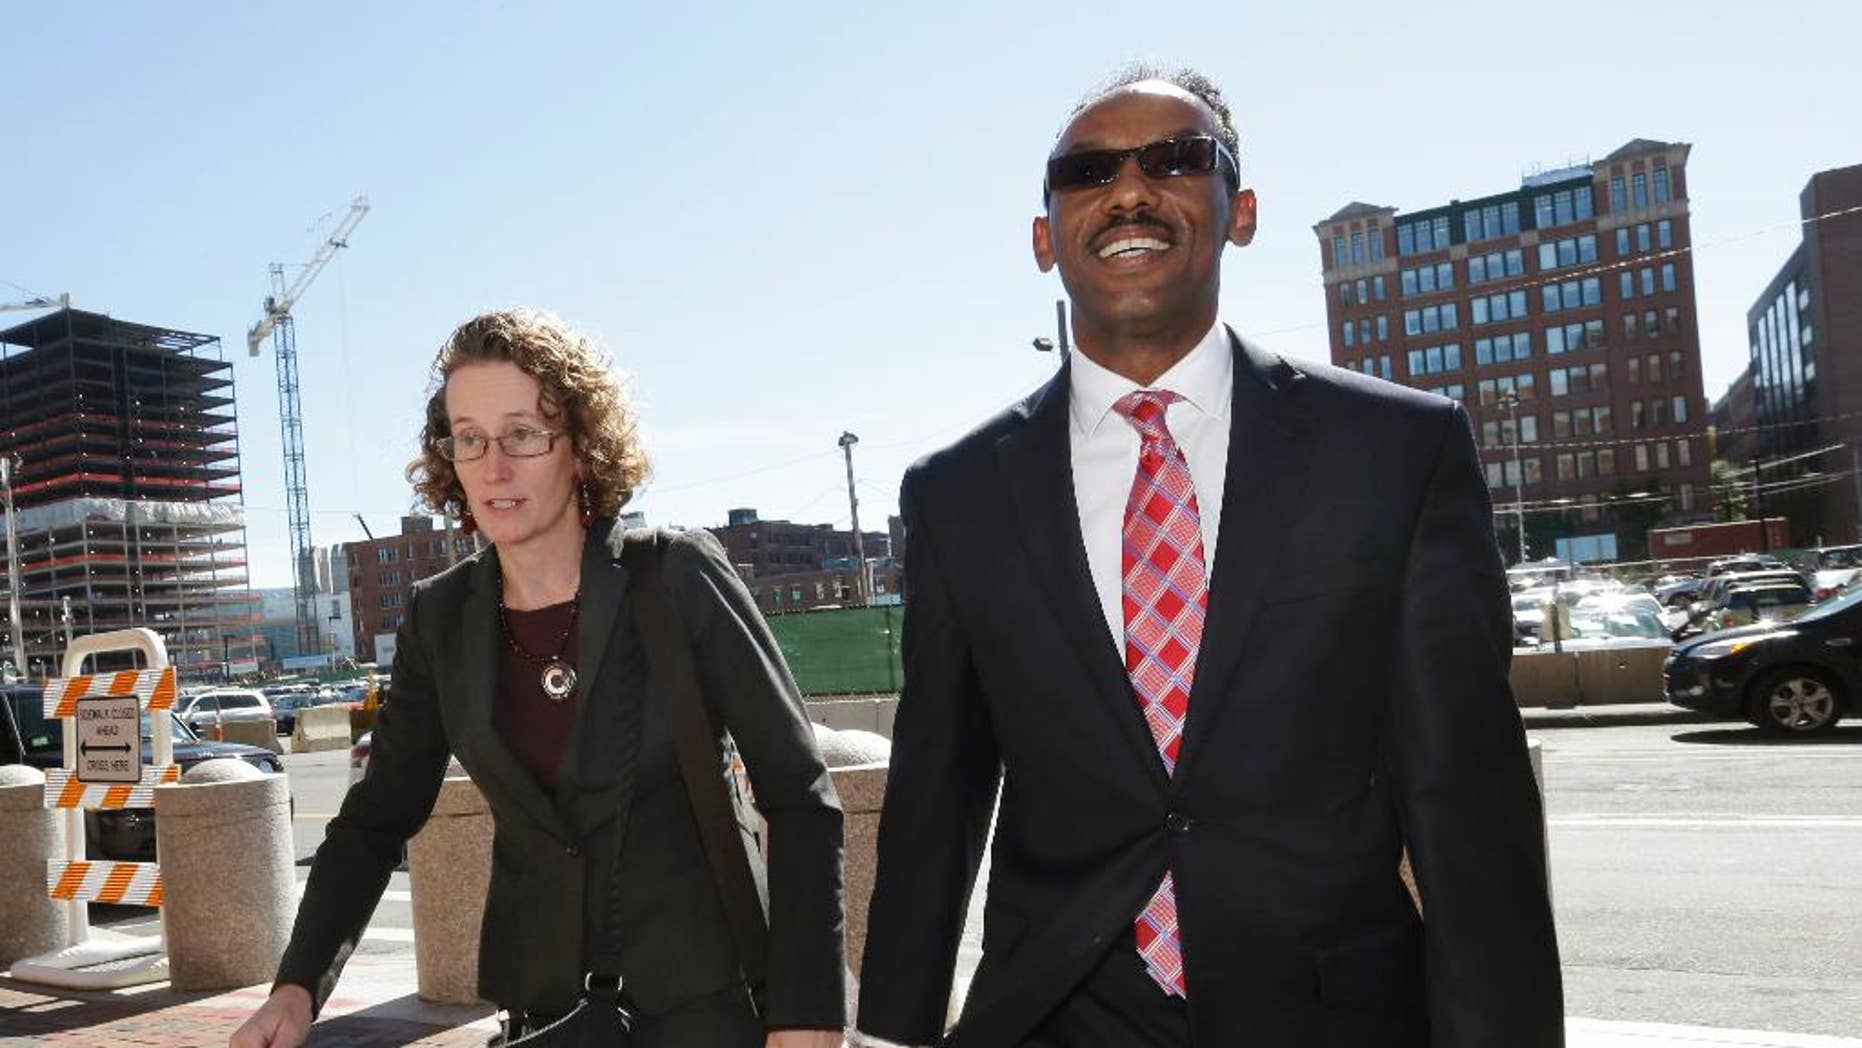 Attorneys for Robel Phillipos, Susan Church, left, and Derege Demissie, arrive at federal court Tuesday, Sept. 23, 2014, in Boston. Phillipos, 21, of Cambridge, Mass., a college friend of Boston Marathon bombing suspect Dzhokhar Tsarnaev, is charged with lying to authorities investigating the bombing. A judge on Tuesday denied a motion to move next week's trial for Phillipos. Jury selection is set to begin Monday in U.S. District Court. Opening statements are scheduled for Oct. 6.  (AP Photo/Steven Senne)